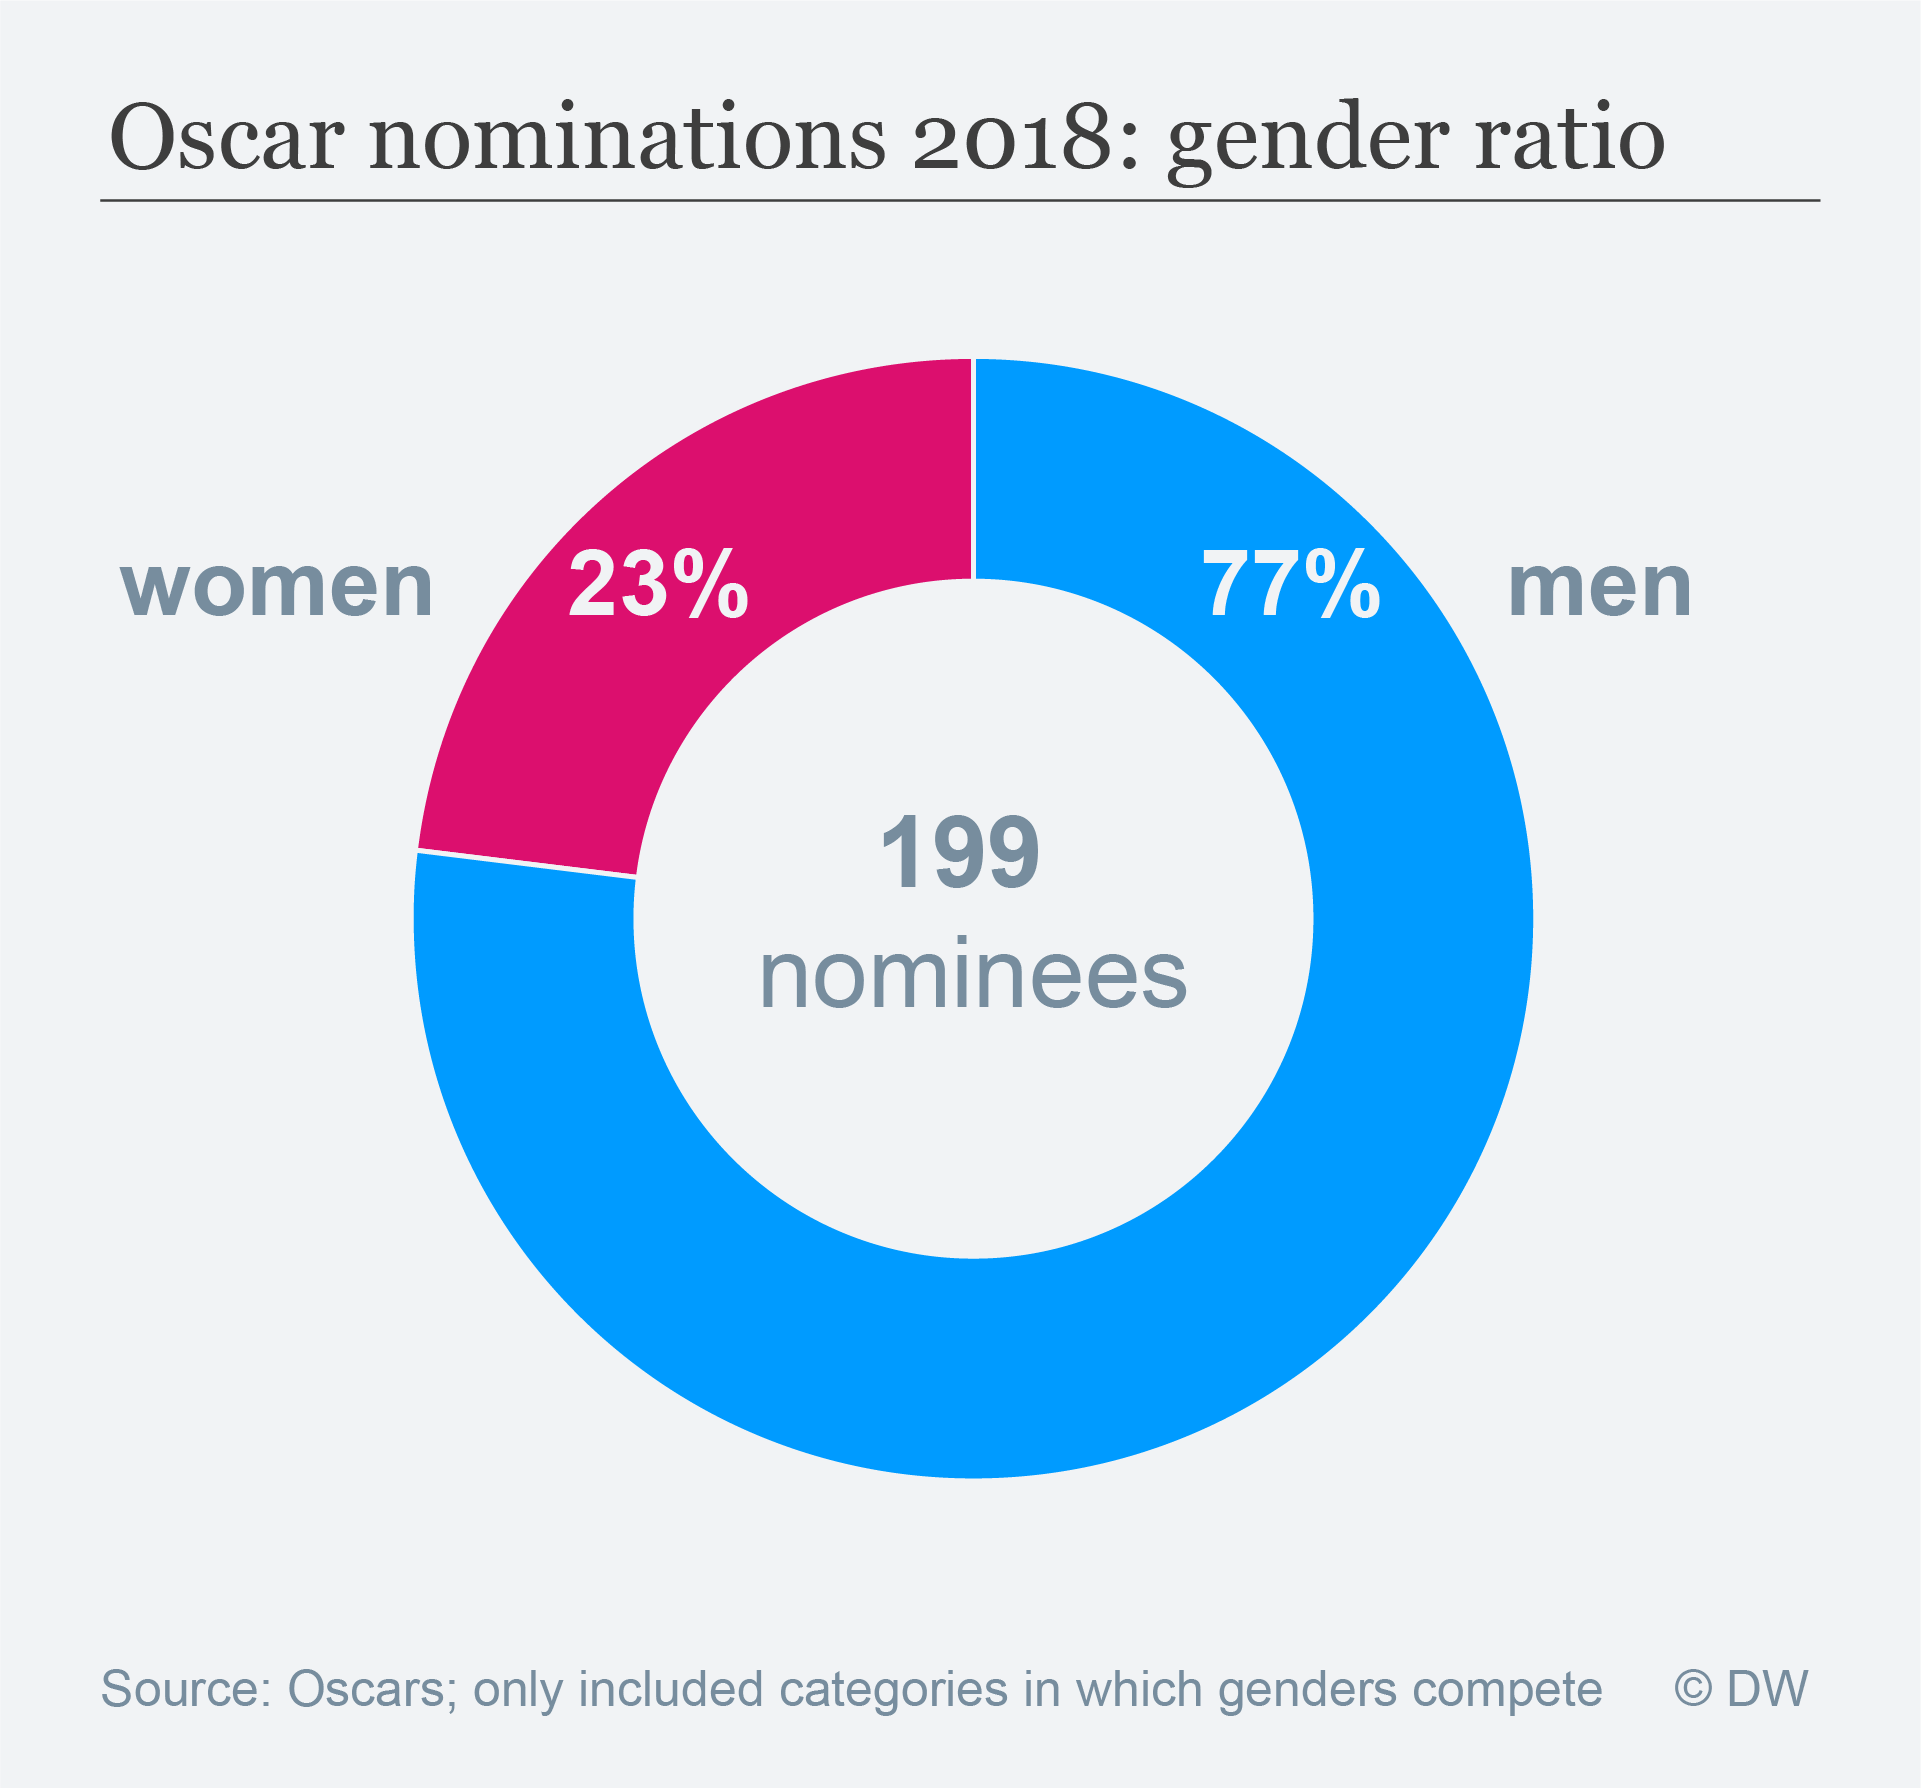 Data visualization: 2018 Oscar nomination gender ratio